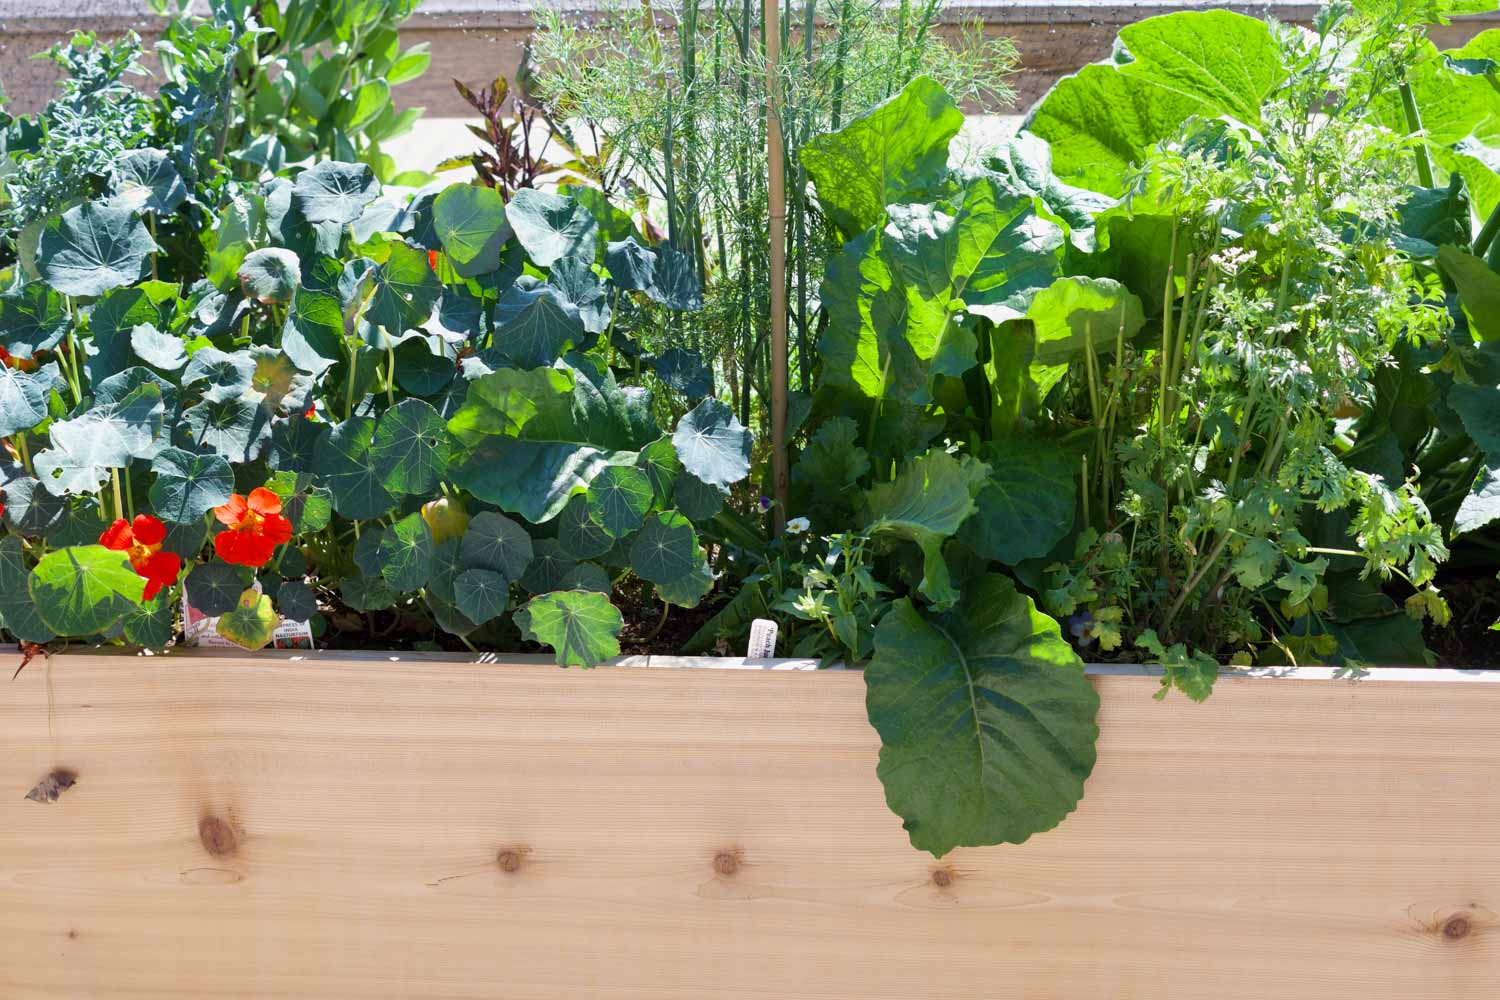 My son's organic vegetable garden, featuring edible flowers and